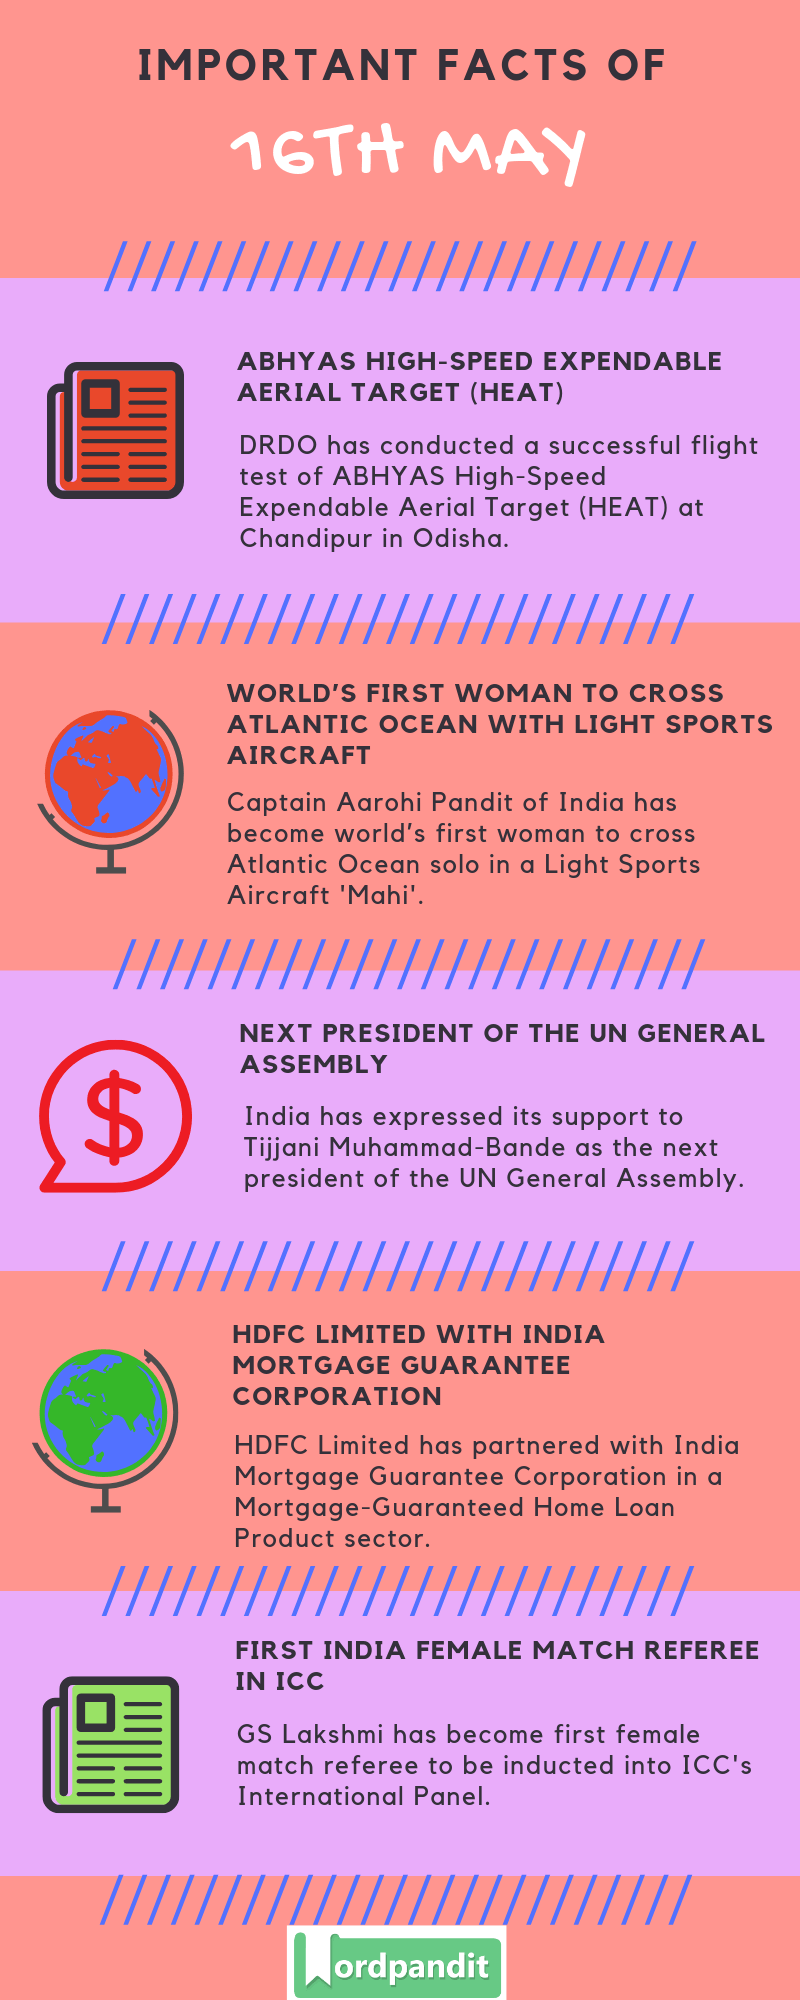 Daily Current Affairs 16 May 2019 Current Affairs Quiz 16 May 2019 Current Affairs Infographic